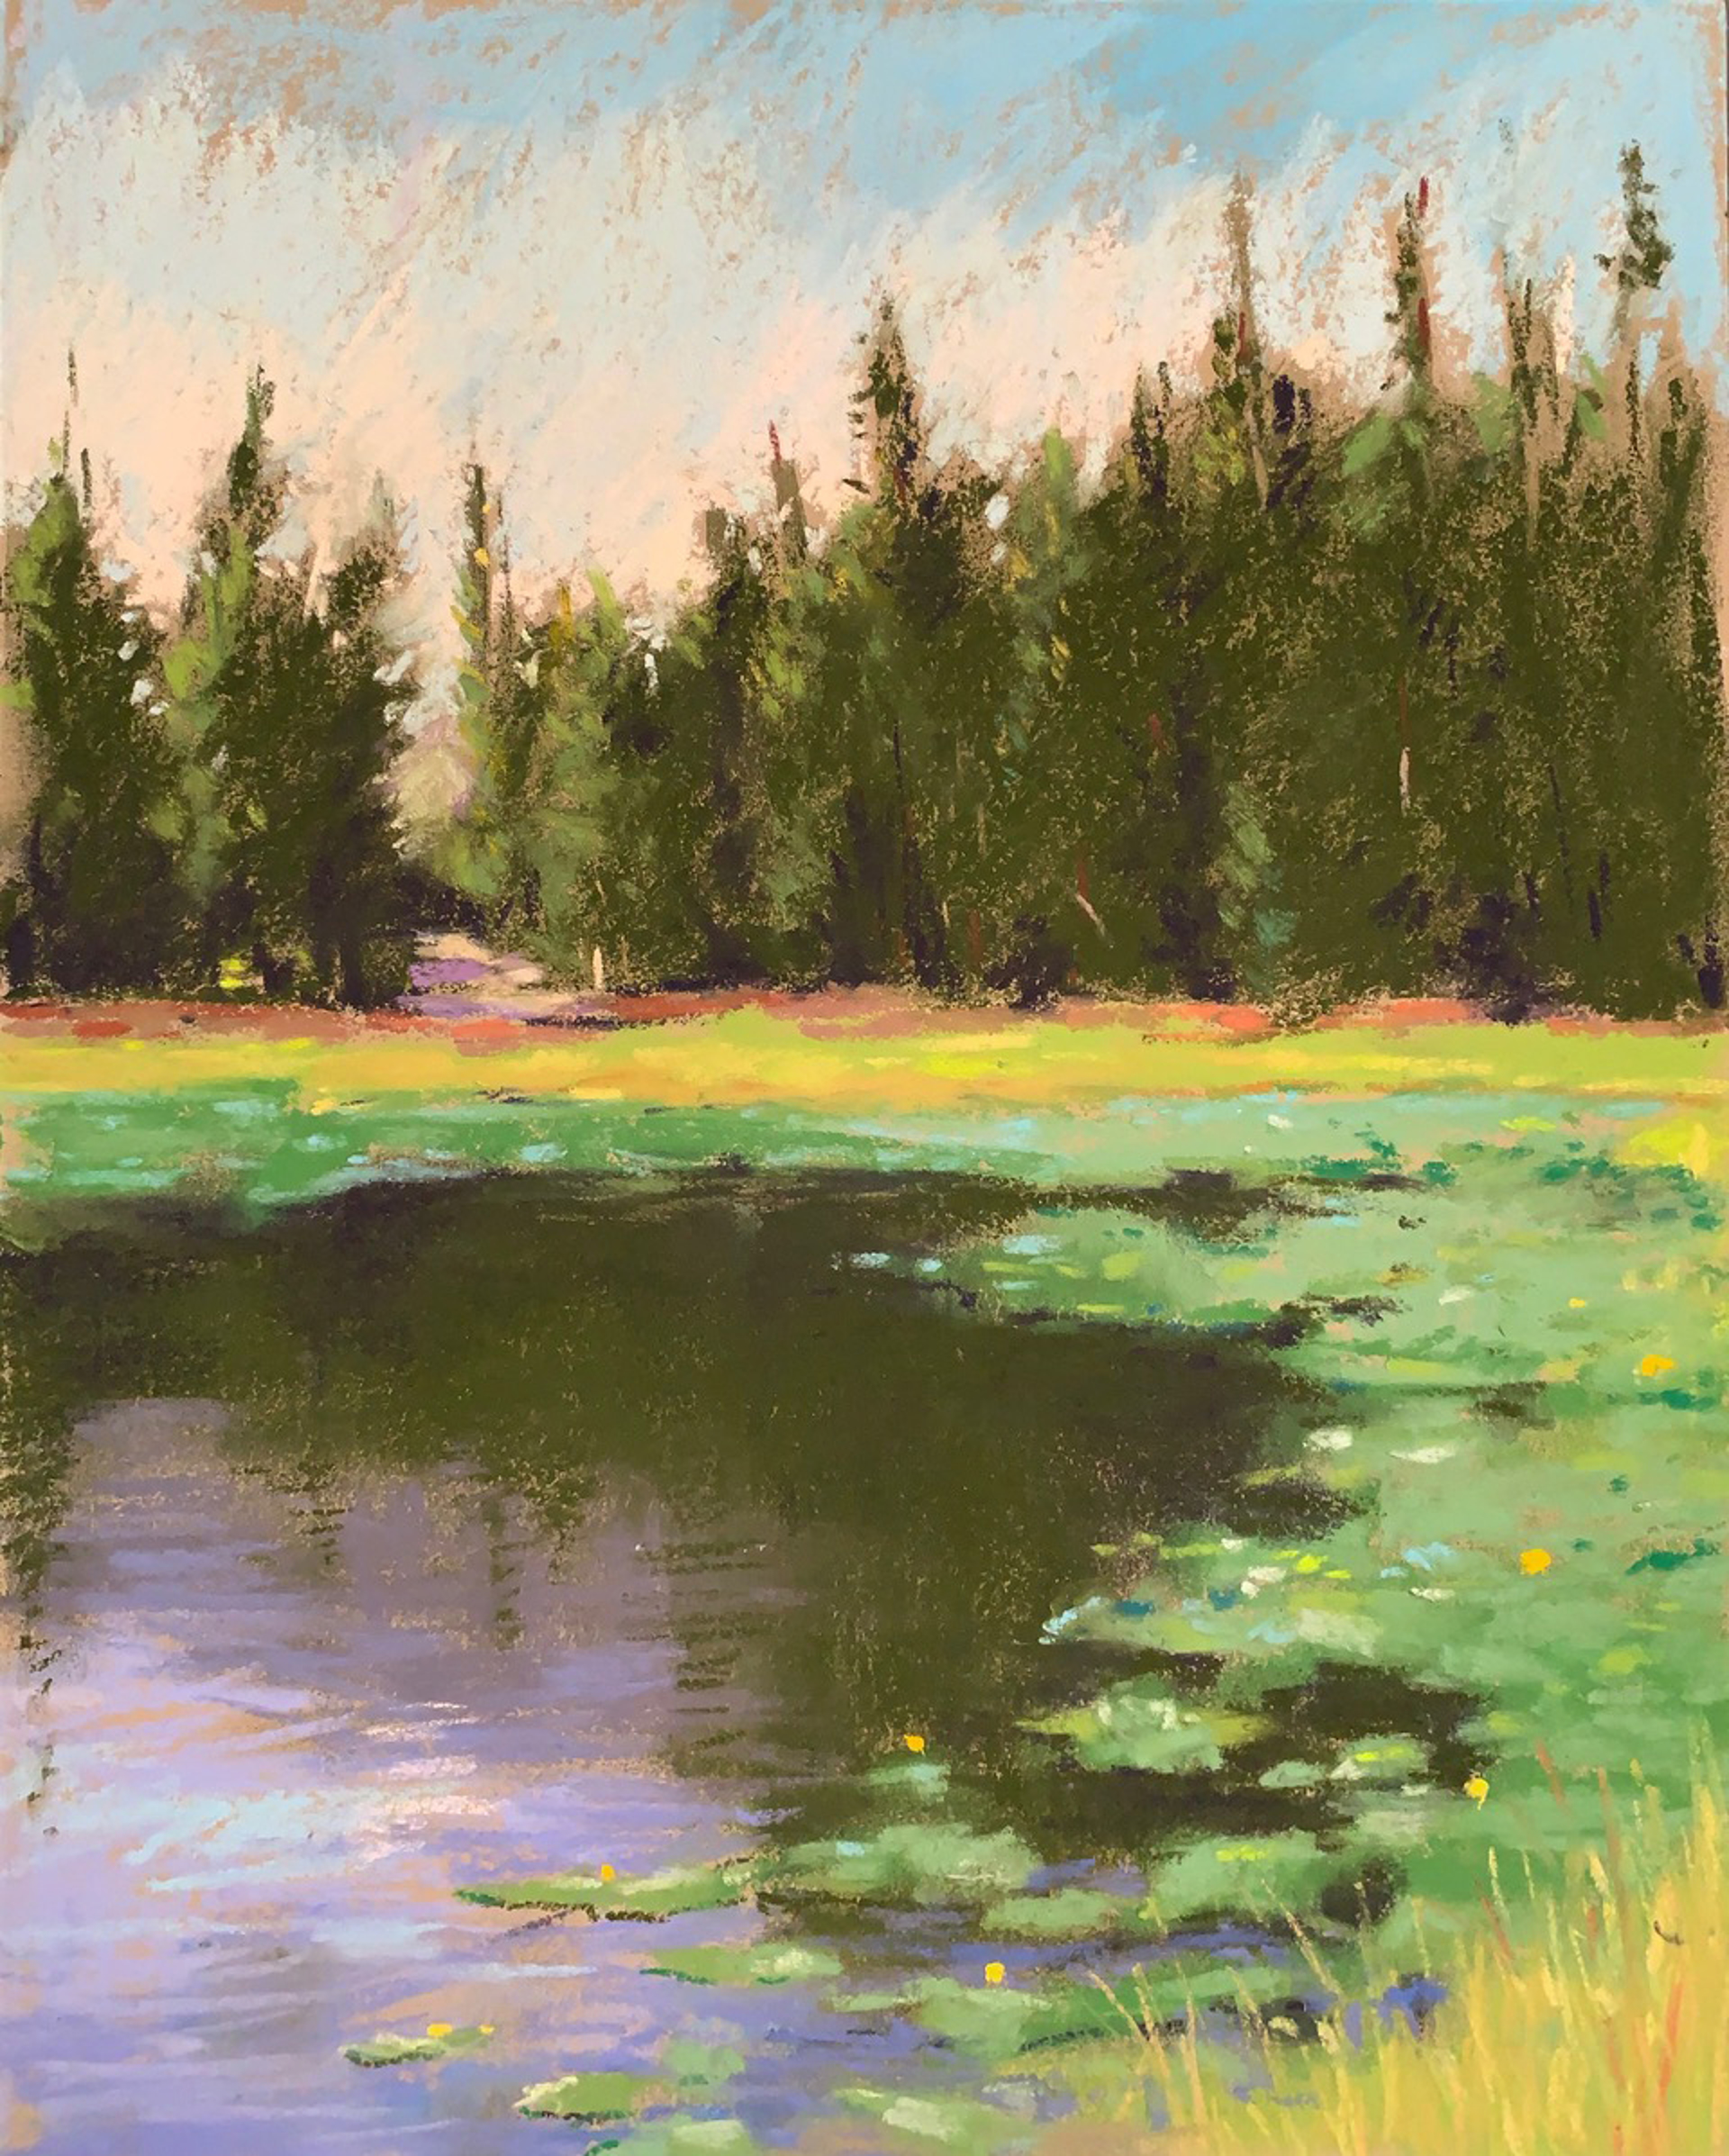 Ulrey's Lake Plein Air Study by Lisa Gleim